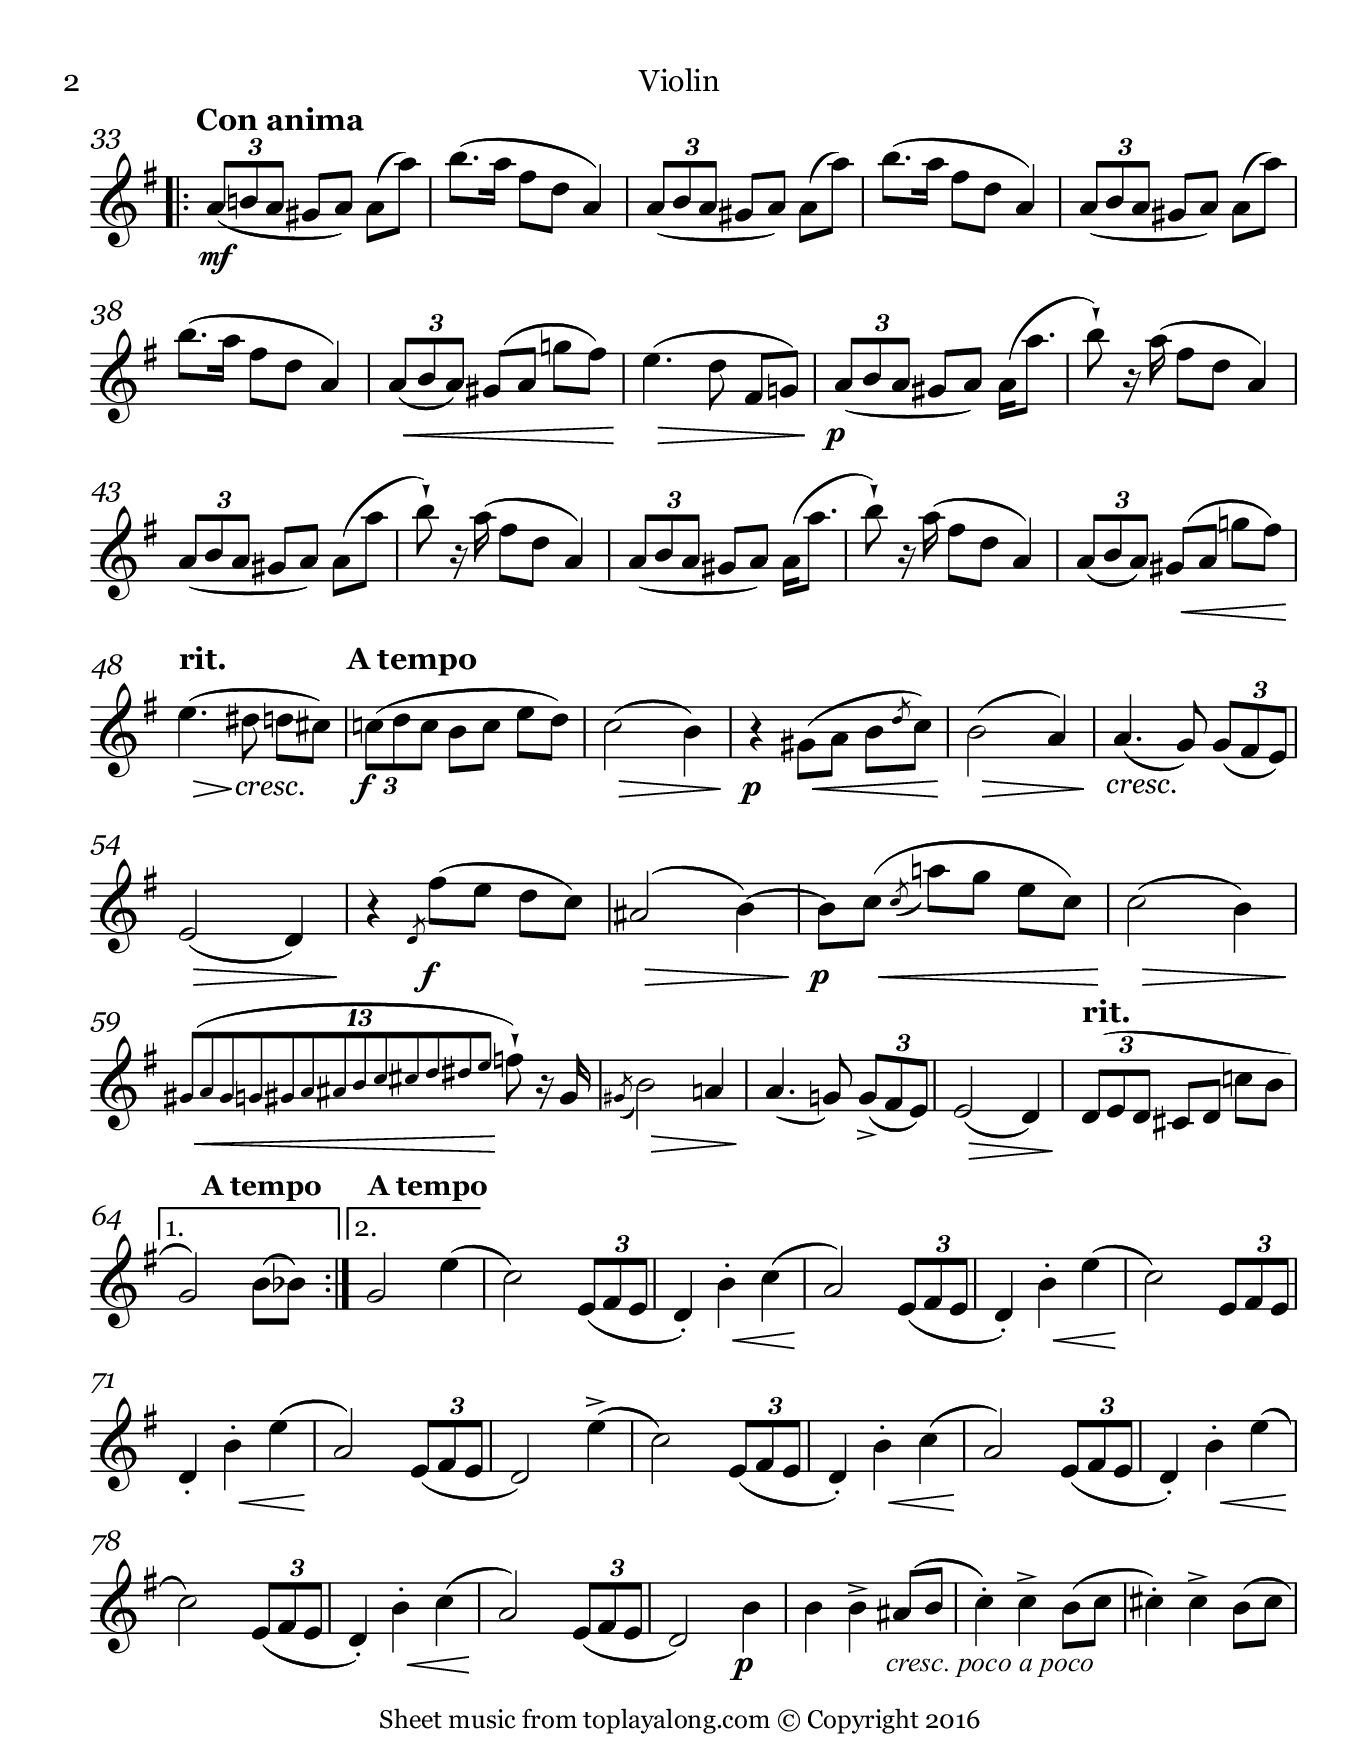 L'adieu Waltz Op. 69 No. 1 by Chopin. Sheet music for Violin, page 2.